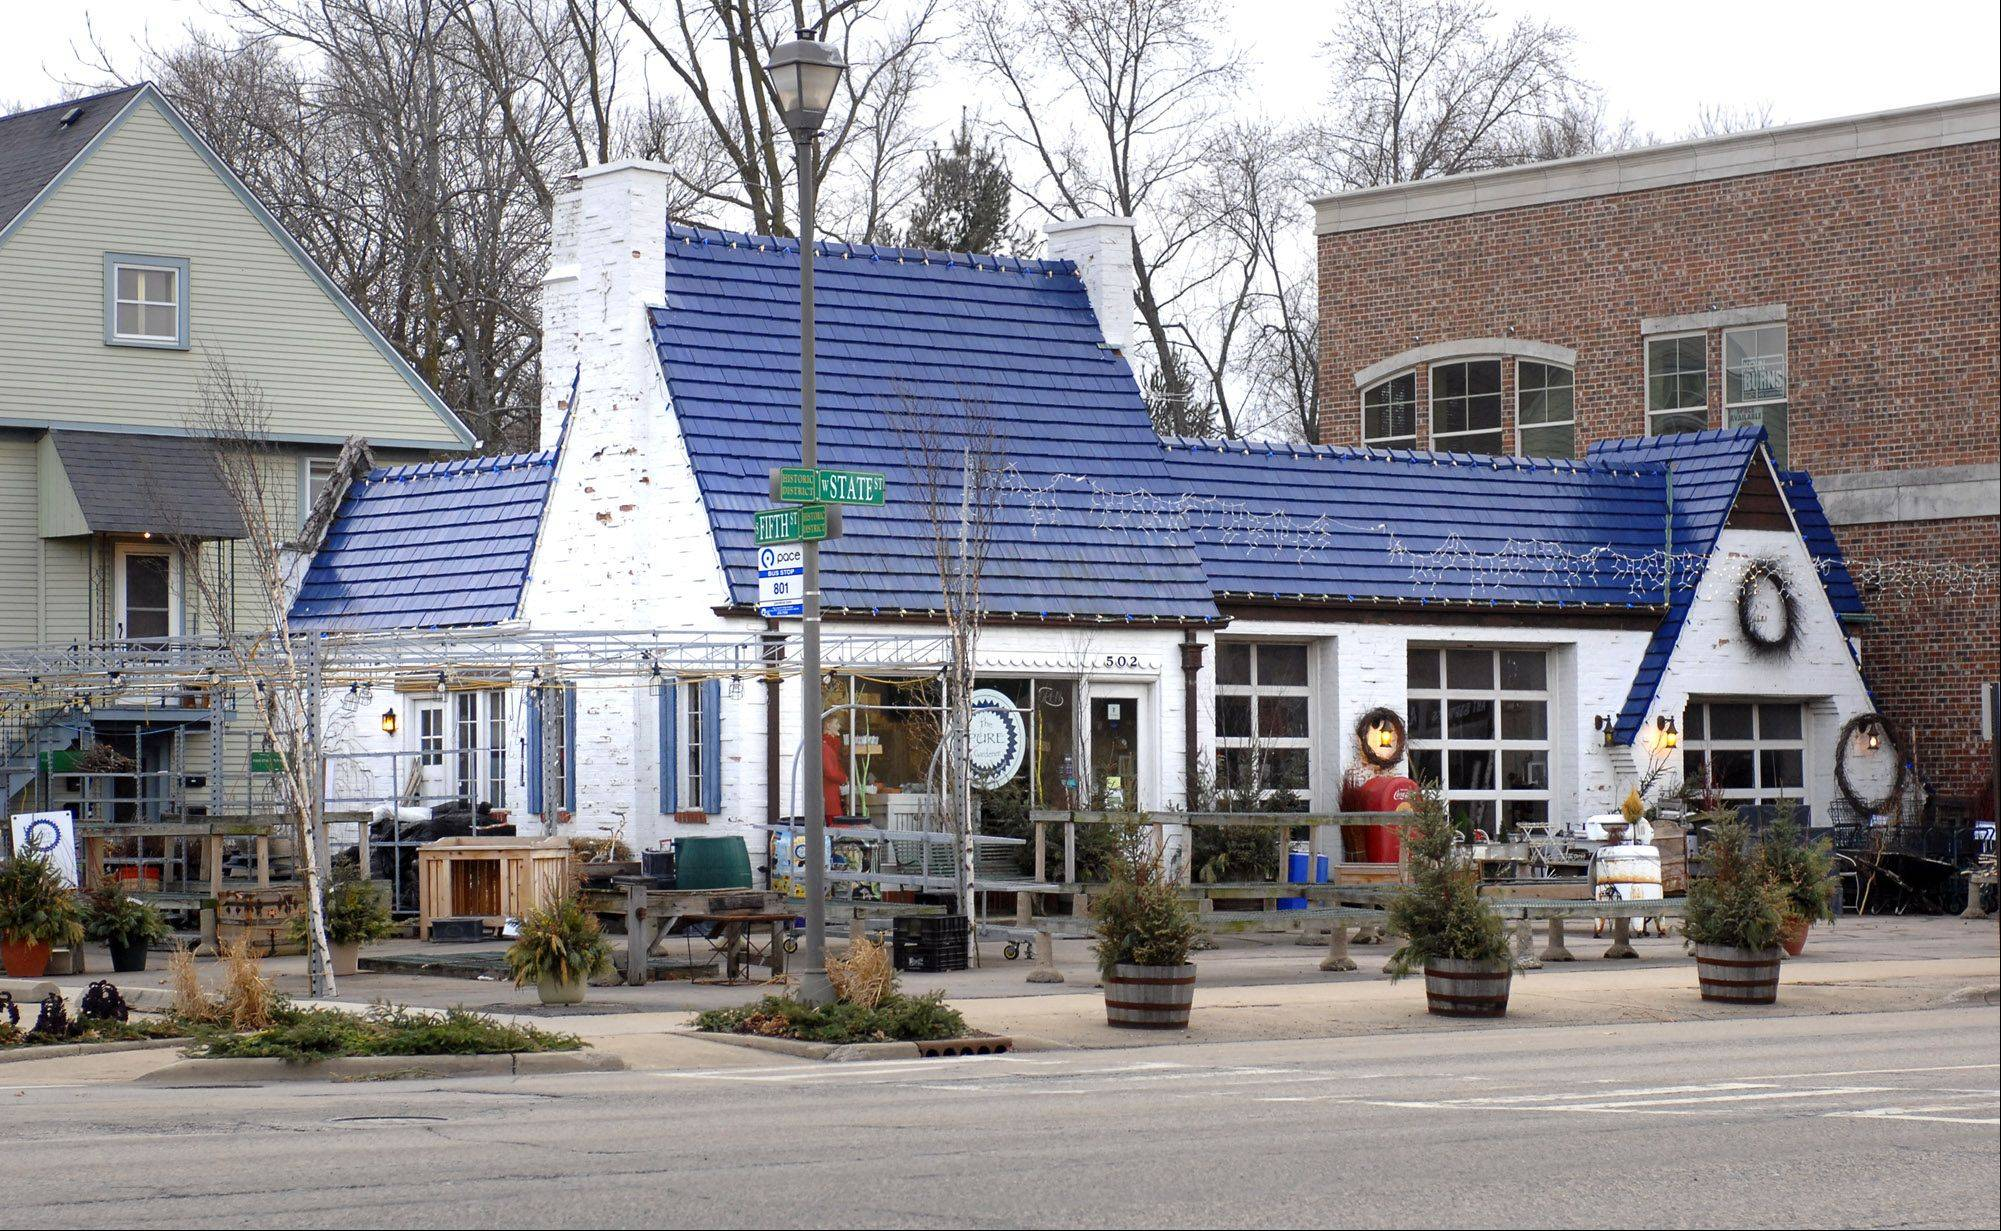 Before its renovation into a drive-up bank, this is how the old Pure Oil station in Geneva looked last year when it housed a gardening shop. Preservation Partners of the Fox Valley has won an award for advocating for the preservation of the historic building.